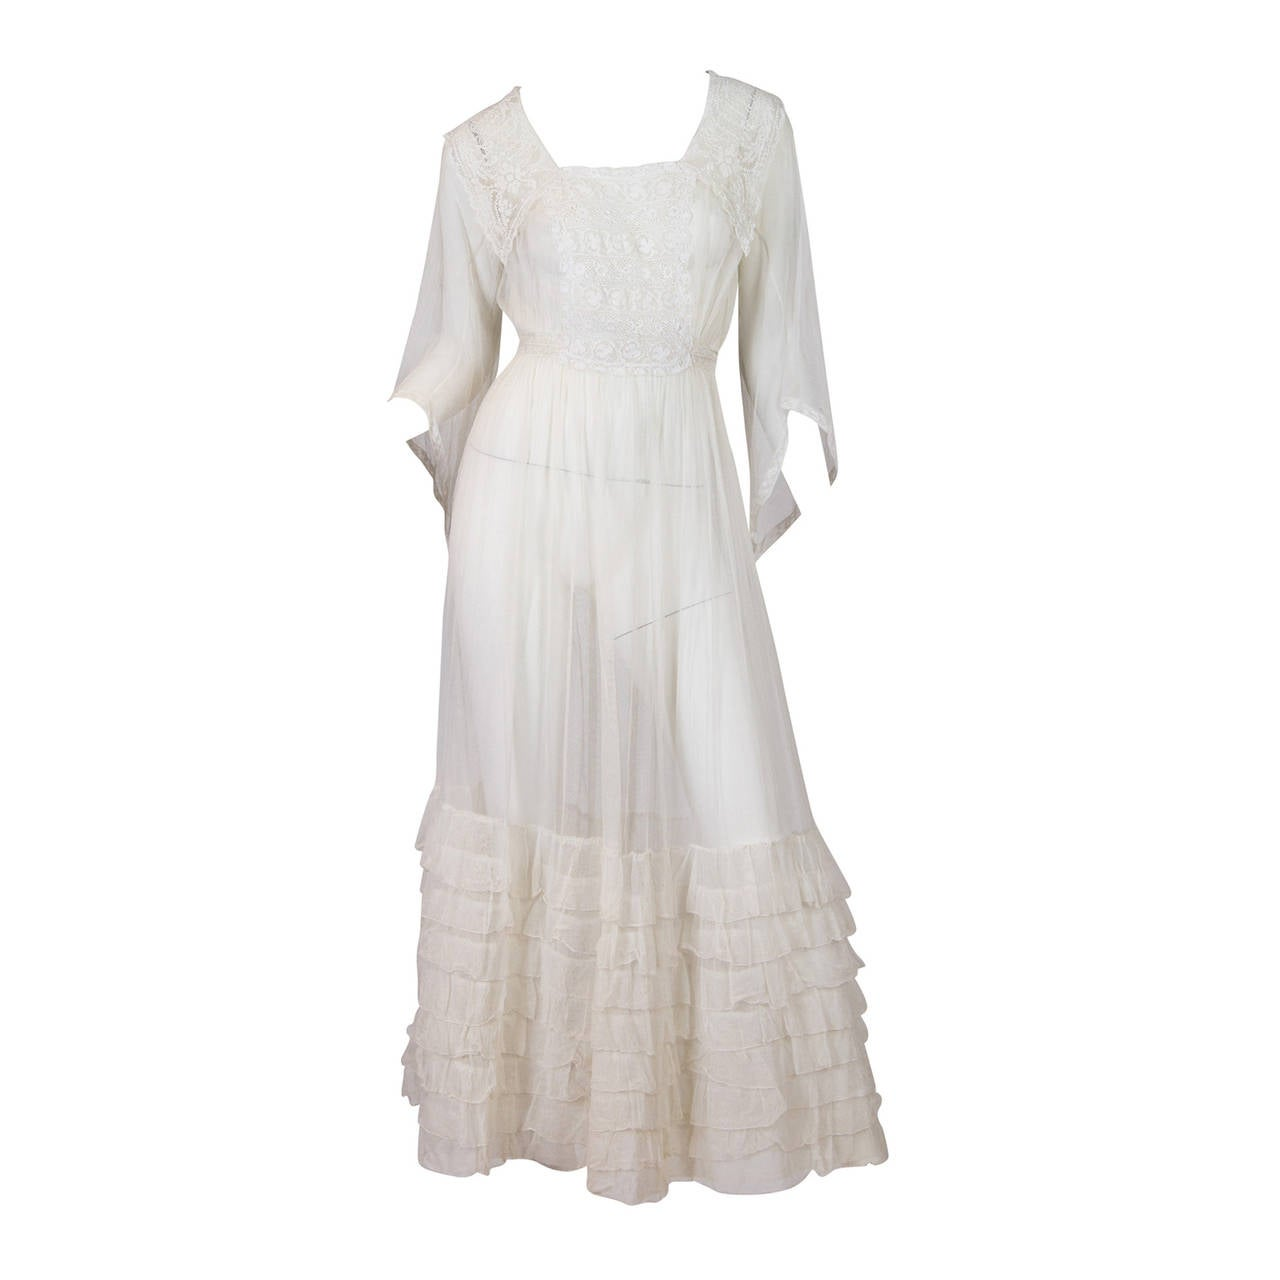 1910s Cotton Net Dress with Irish crochet and lace trim 1